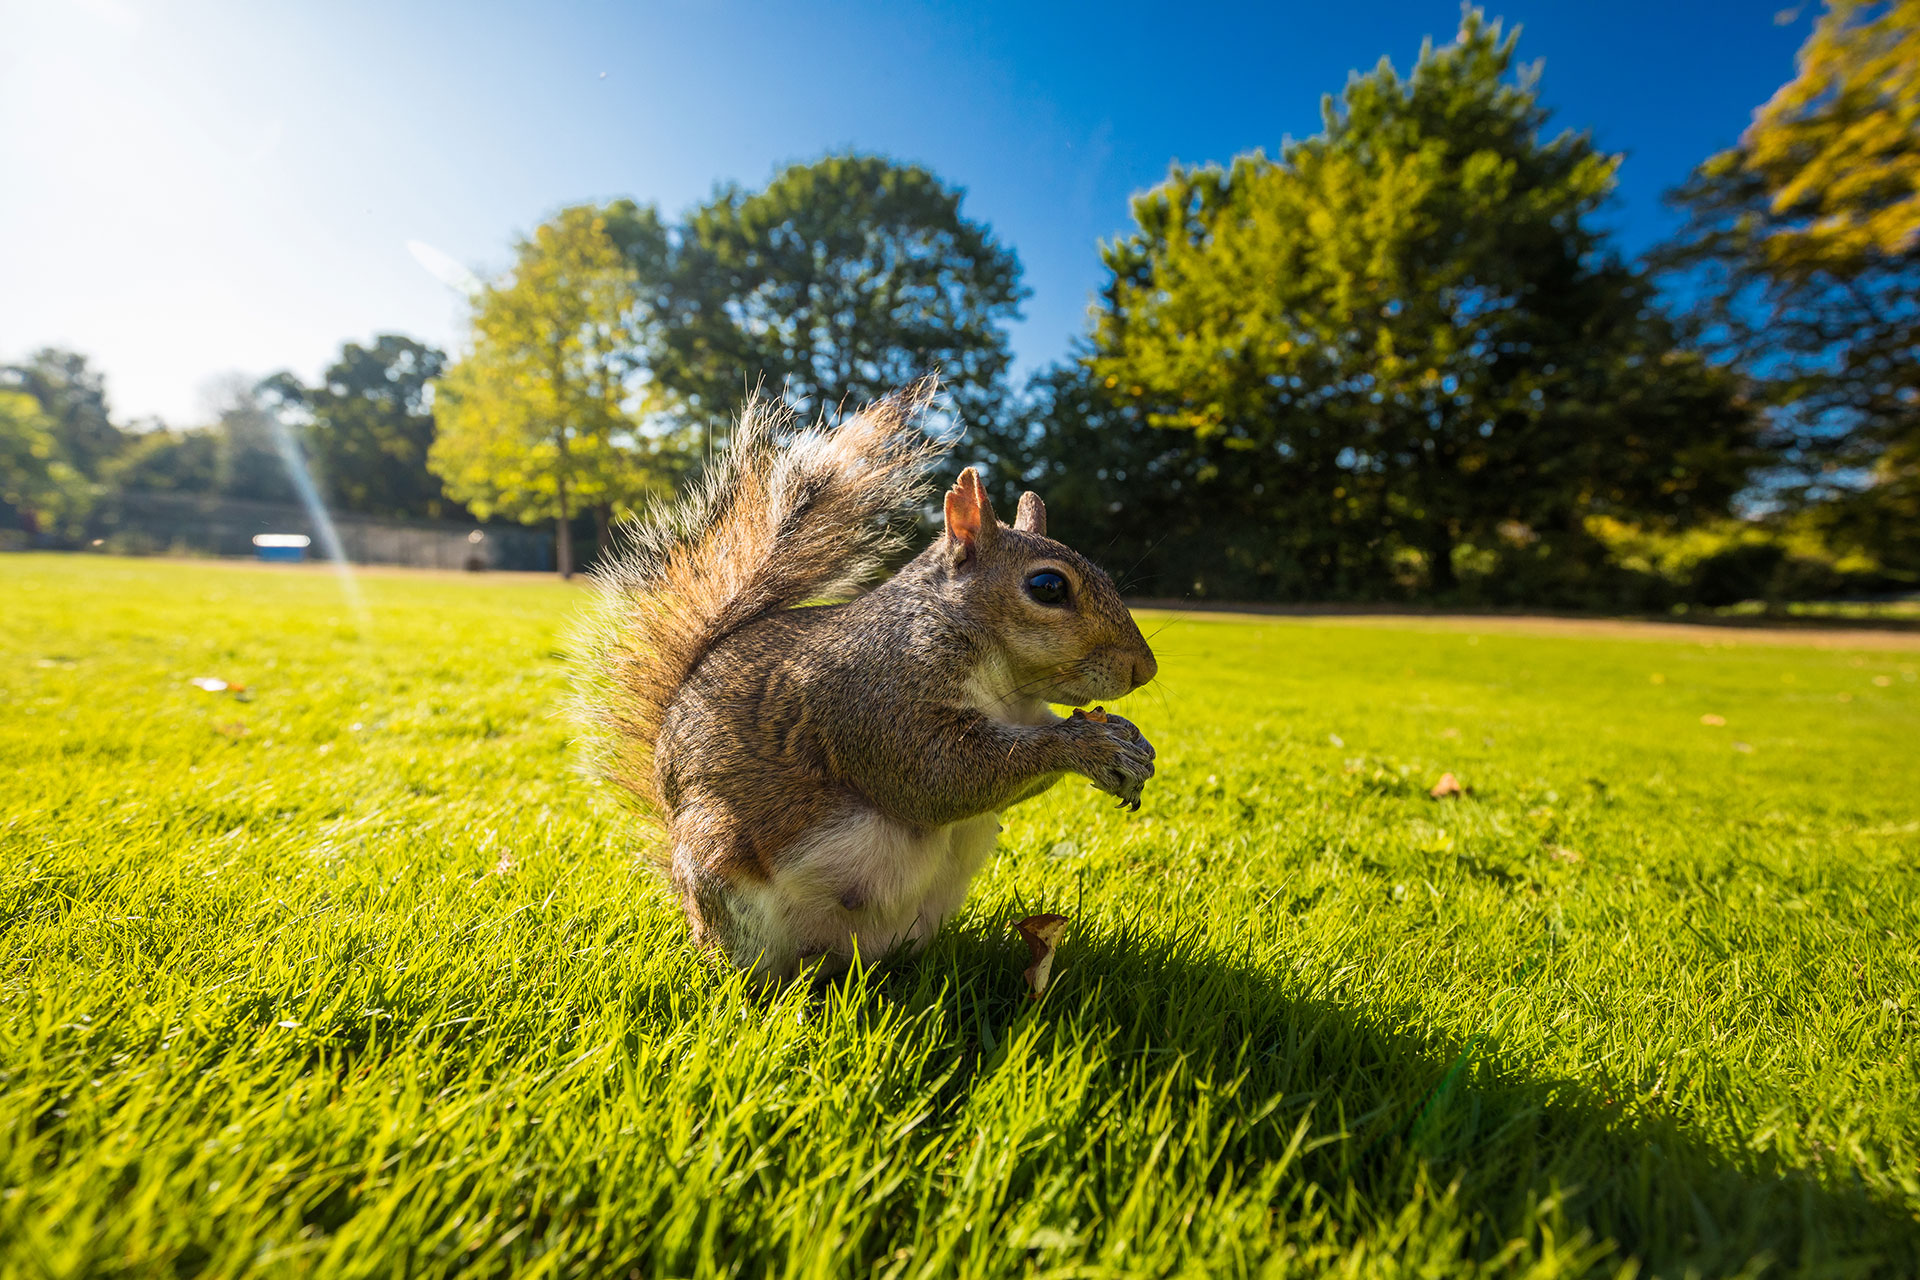 grey-squirrel-eating-a-nut-on-a-grass-in-the-park--JMTLQ6M